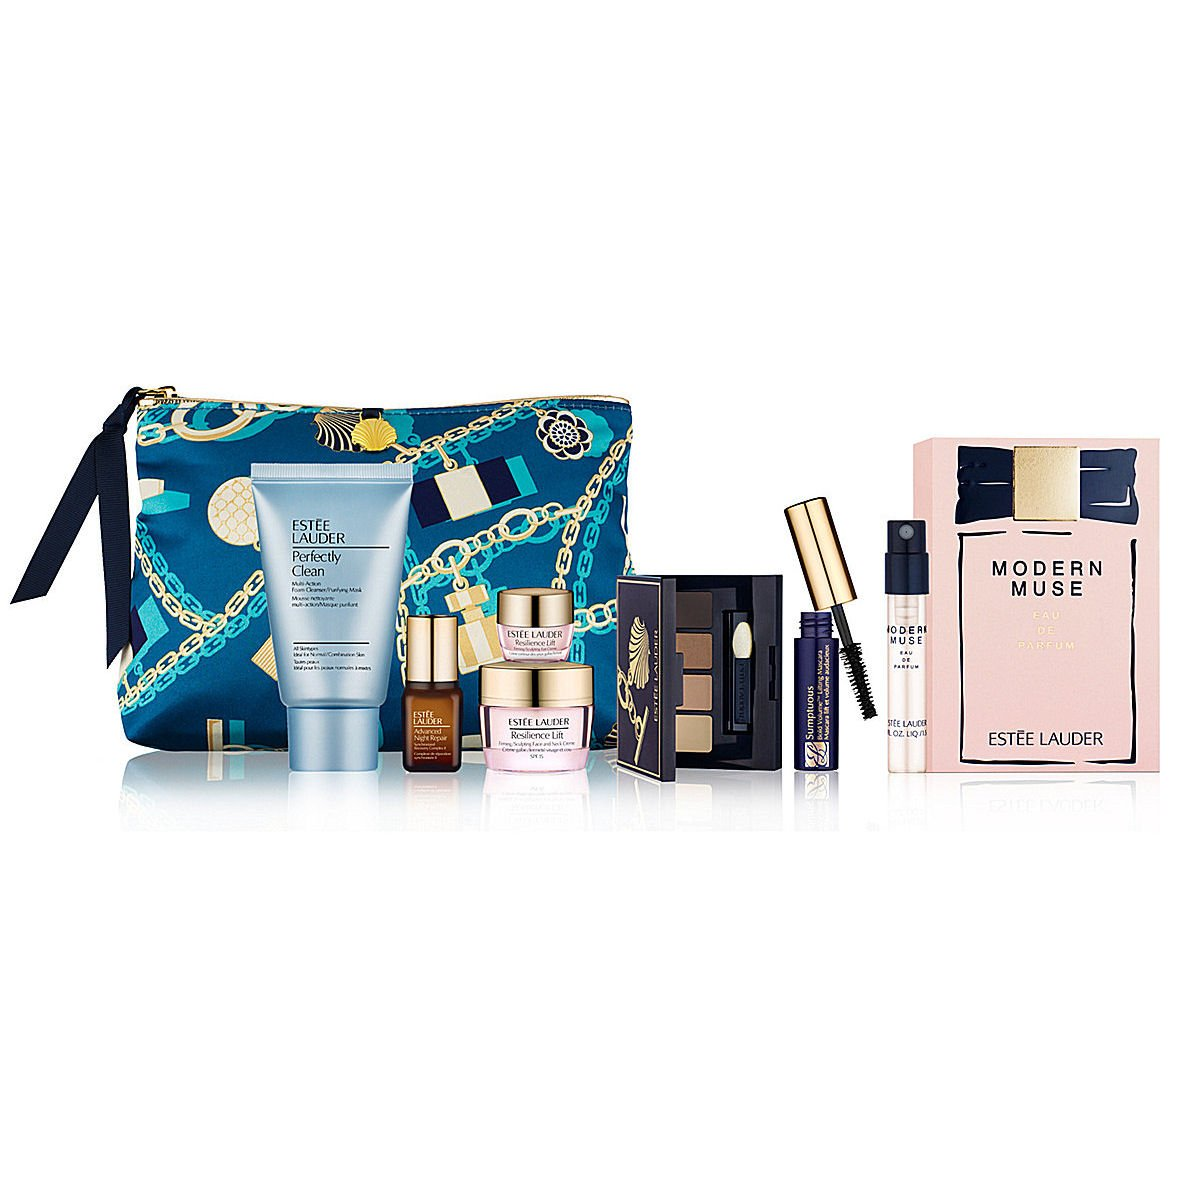 Estee-Lauder-2014-8-Pcs-Skincare-Makeup-Gift-Set-with-Cosmetic-Bag-Plus-New-Modern-Muse